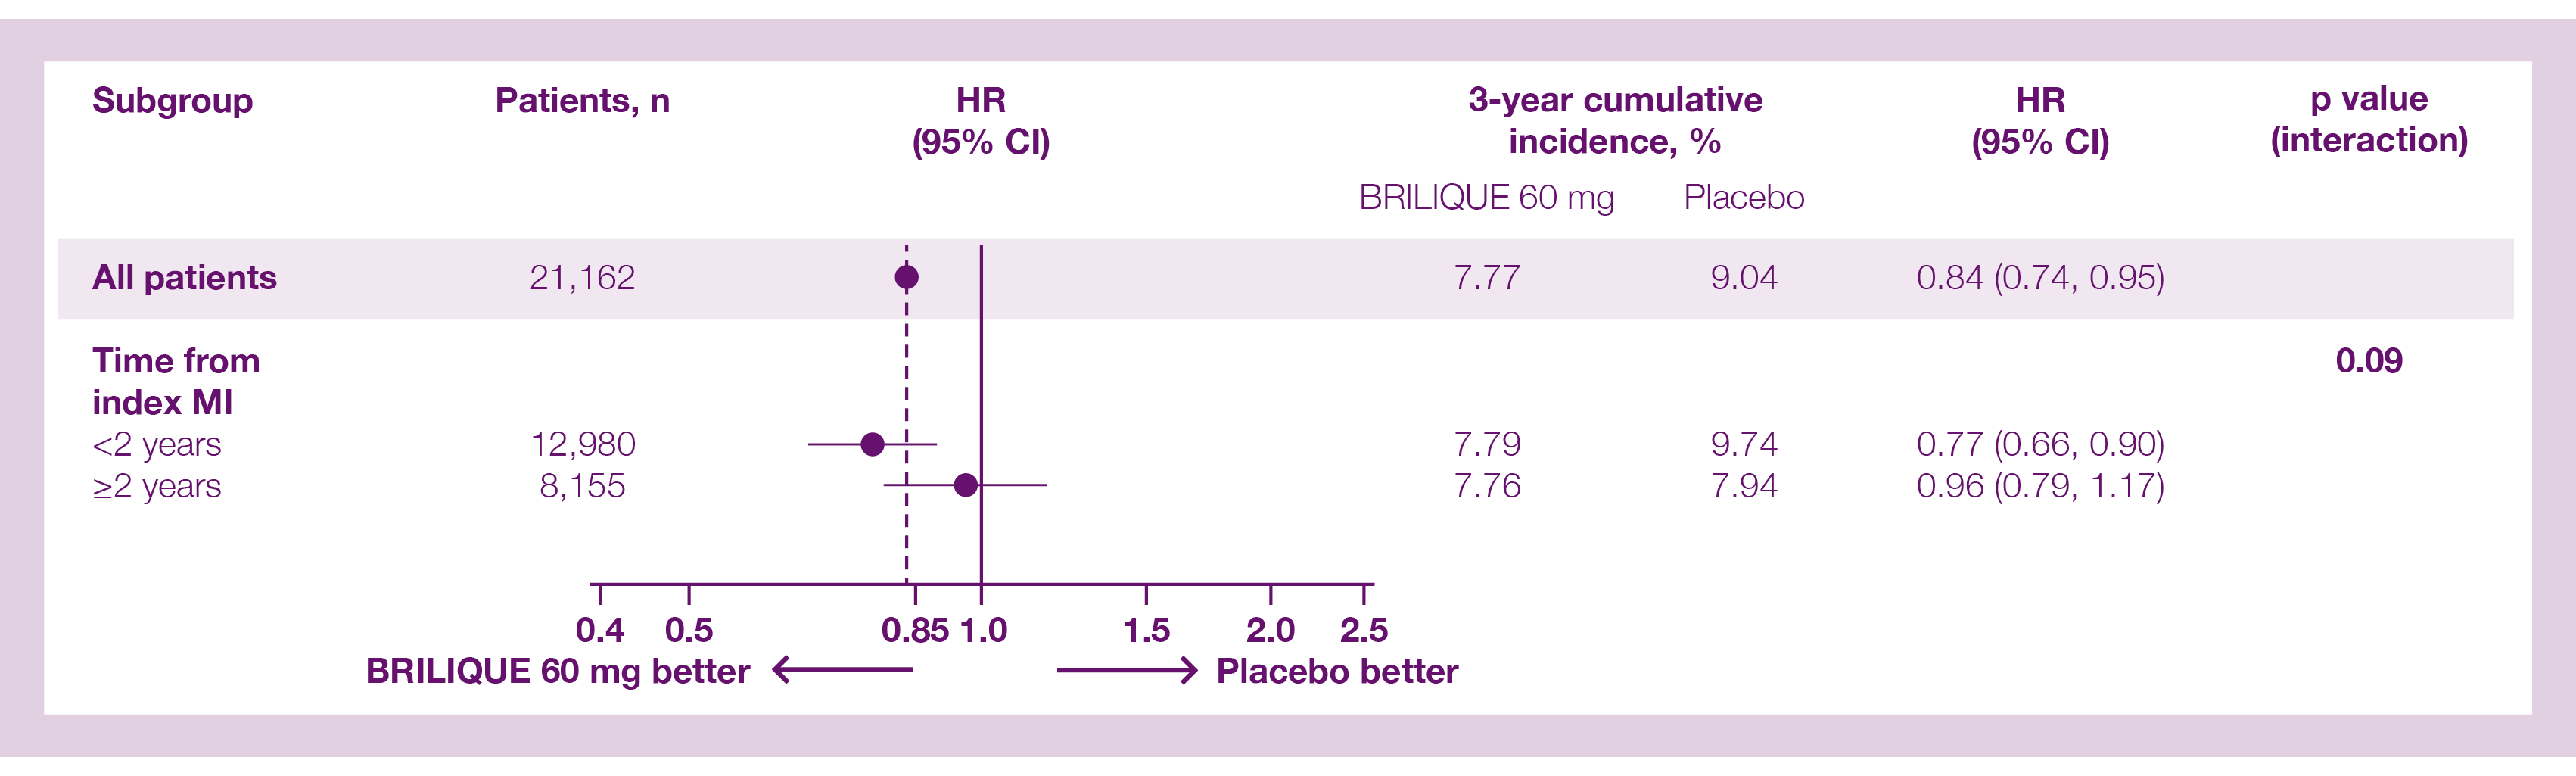 Time from index MI - Primary efficacy endpoint